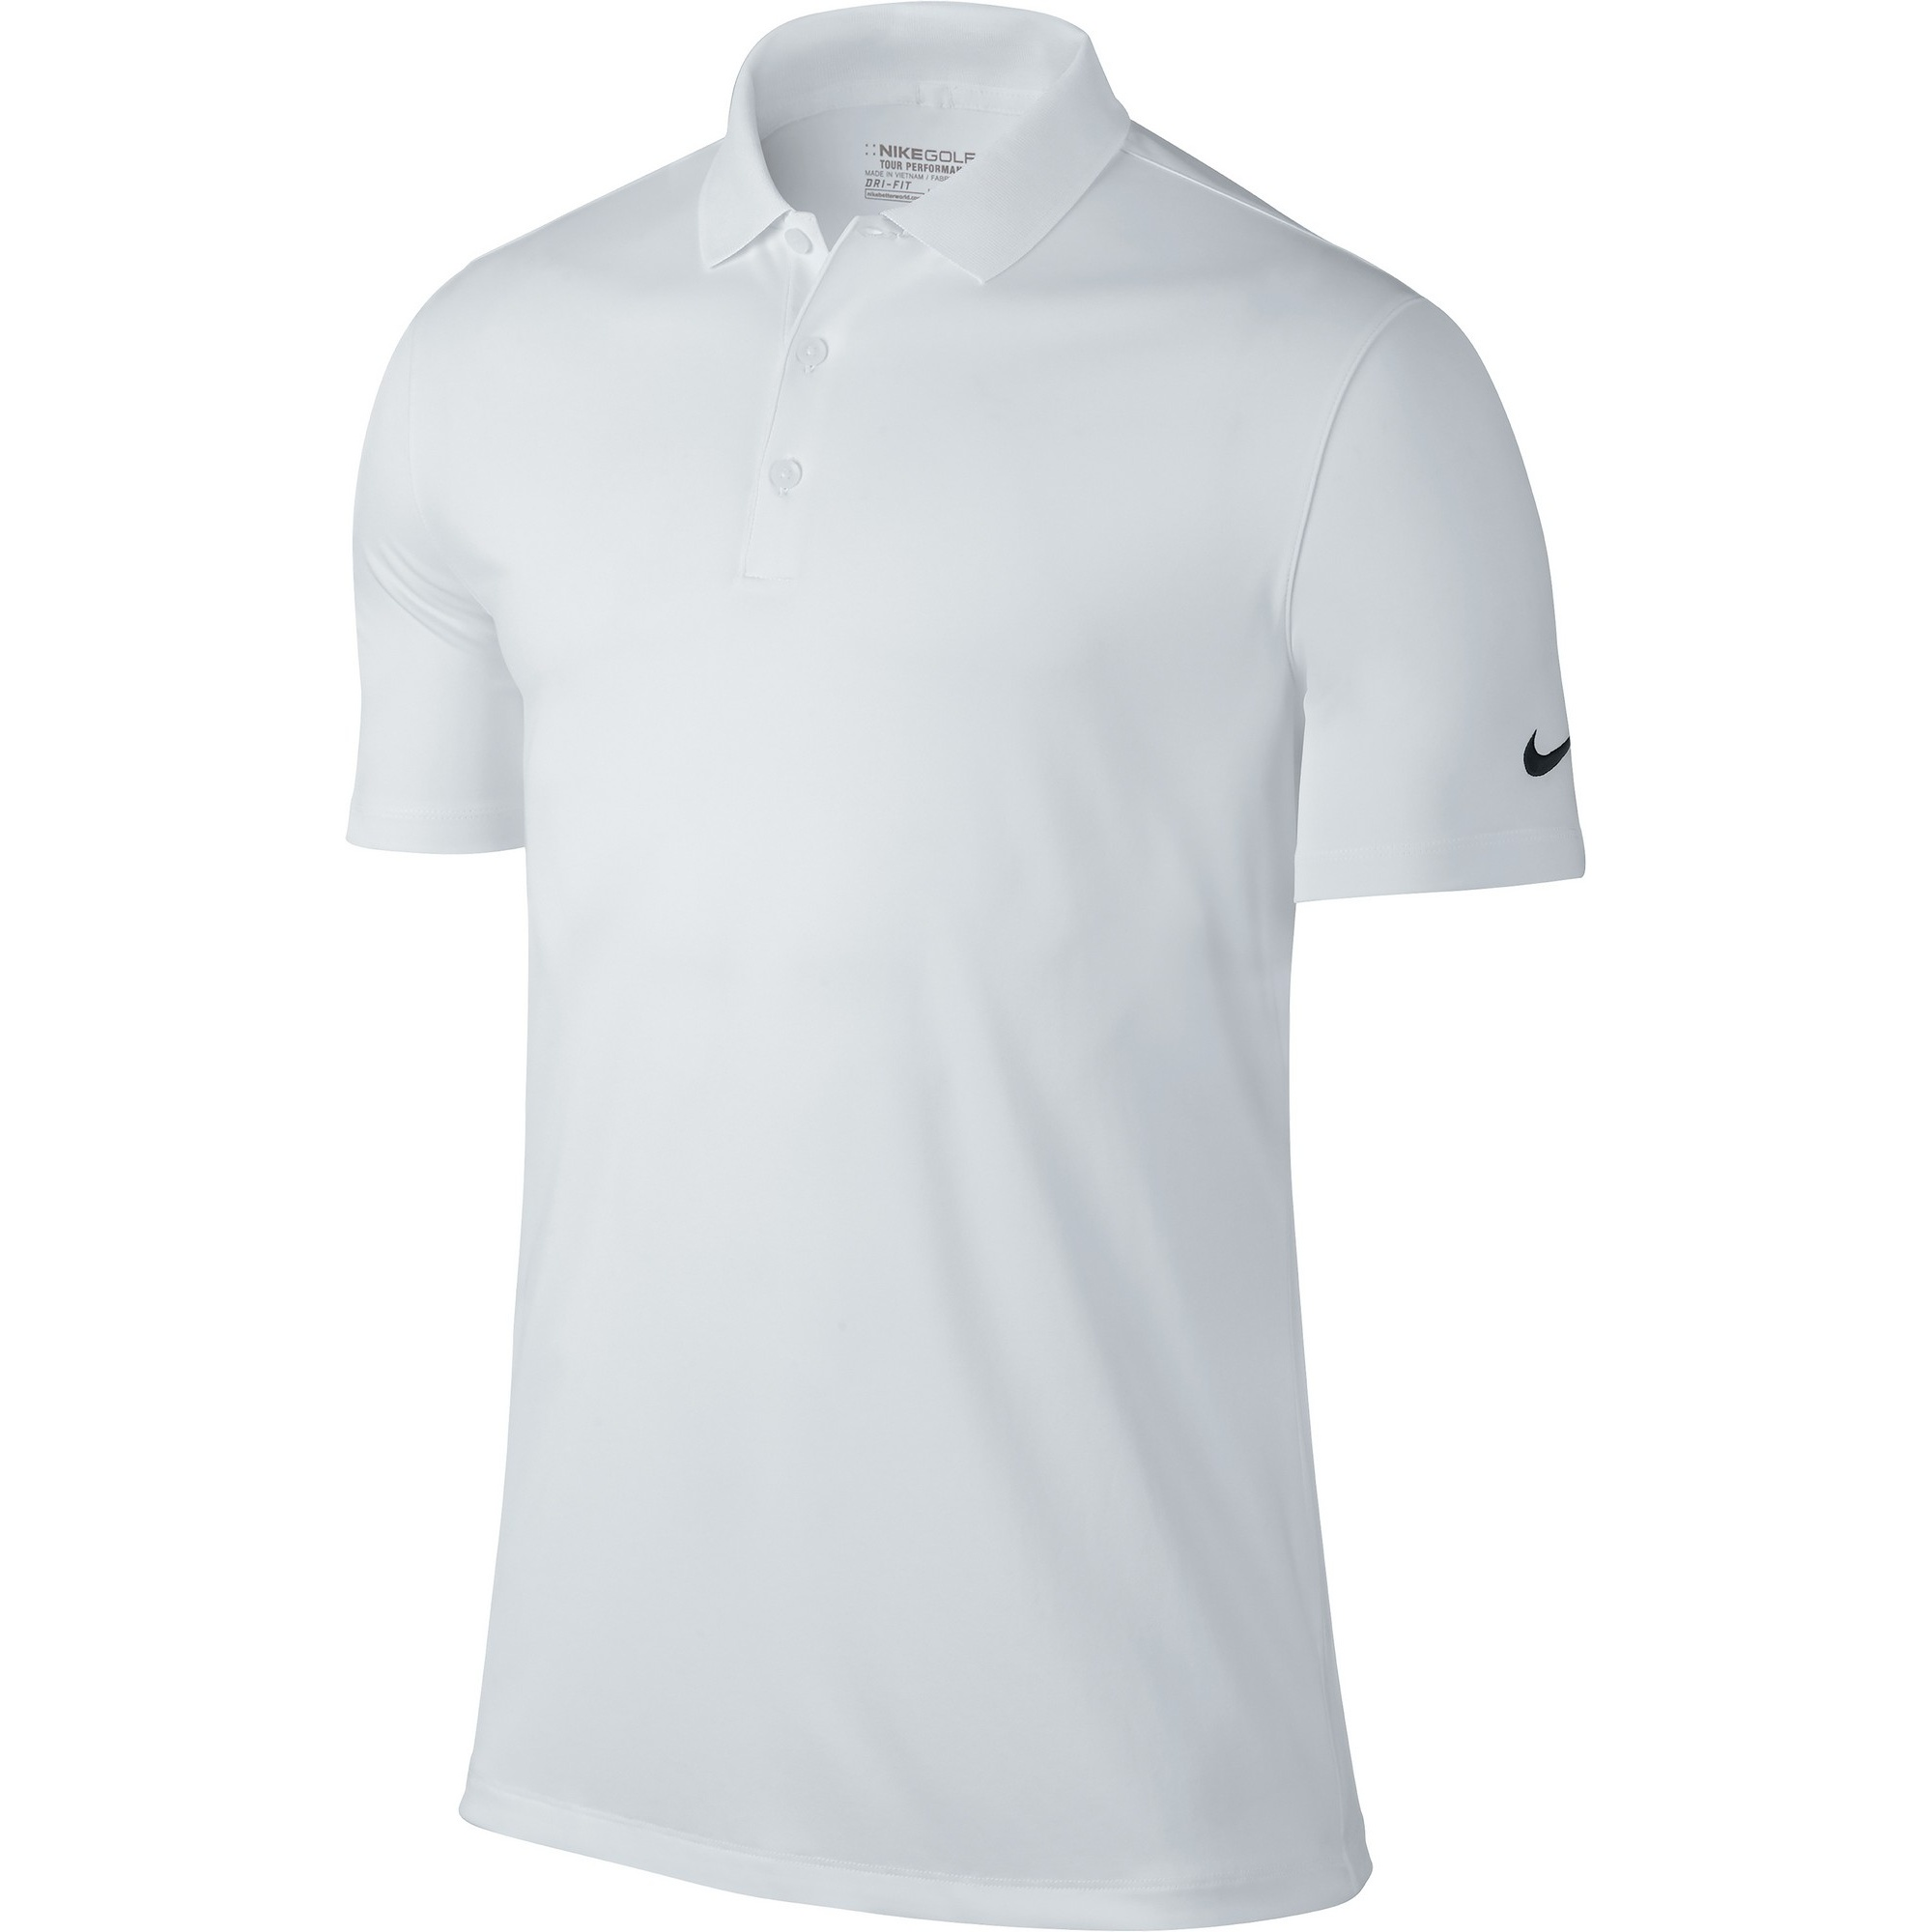 Mens Cotton Golf Shirts